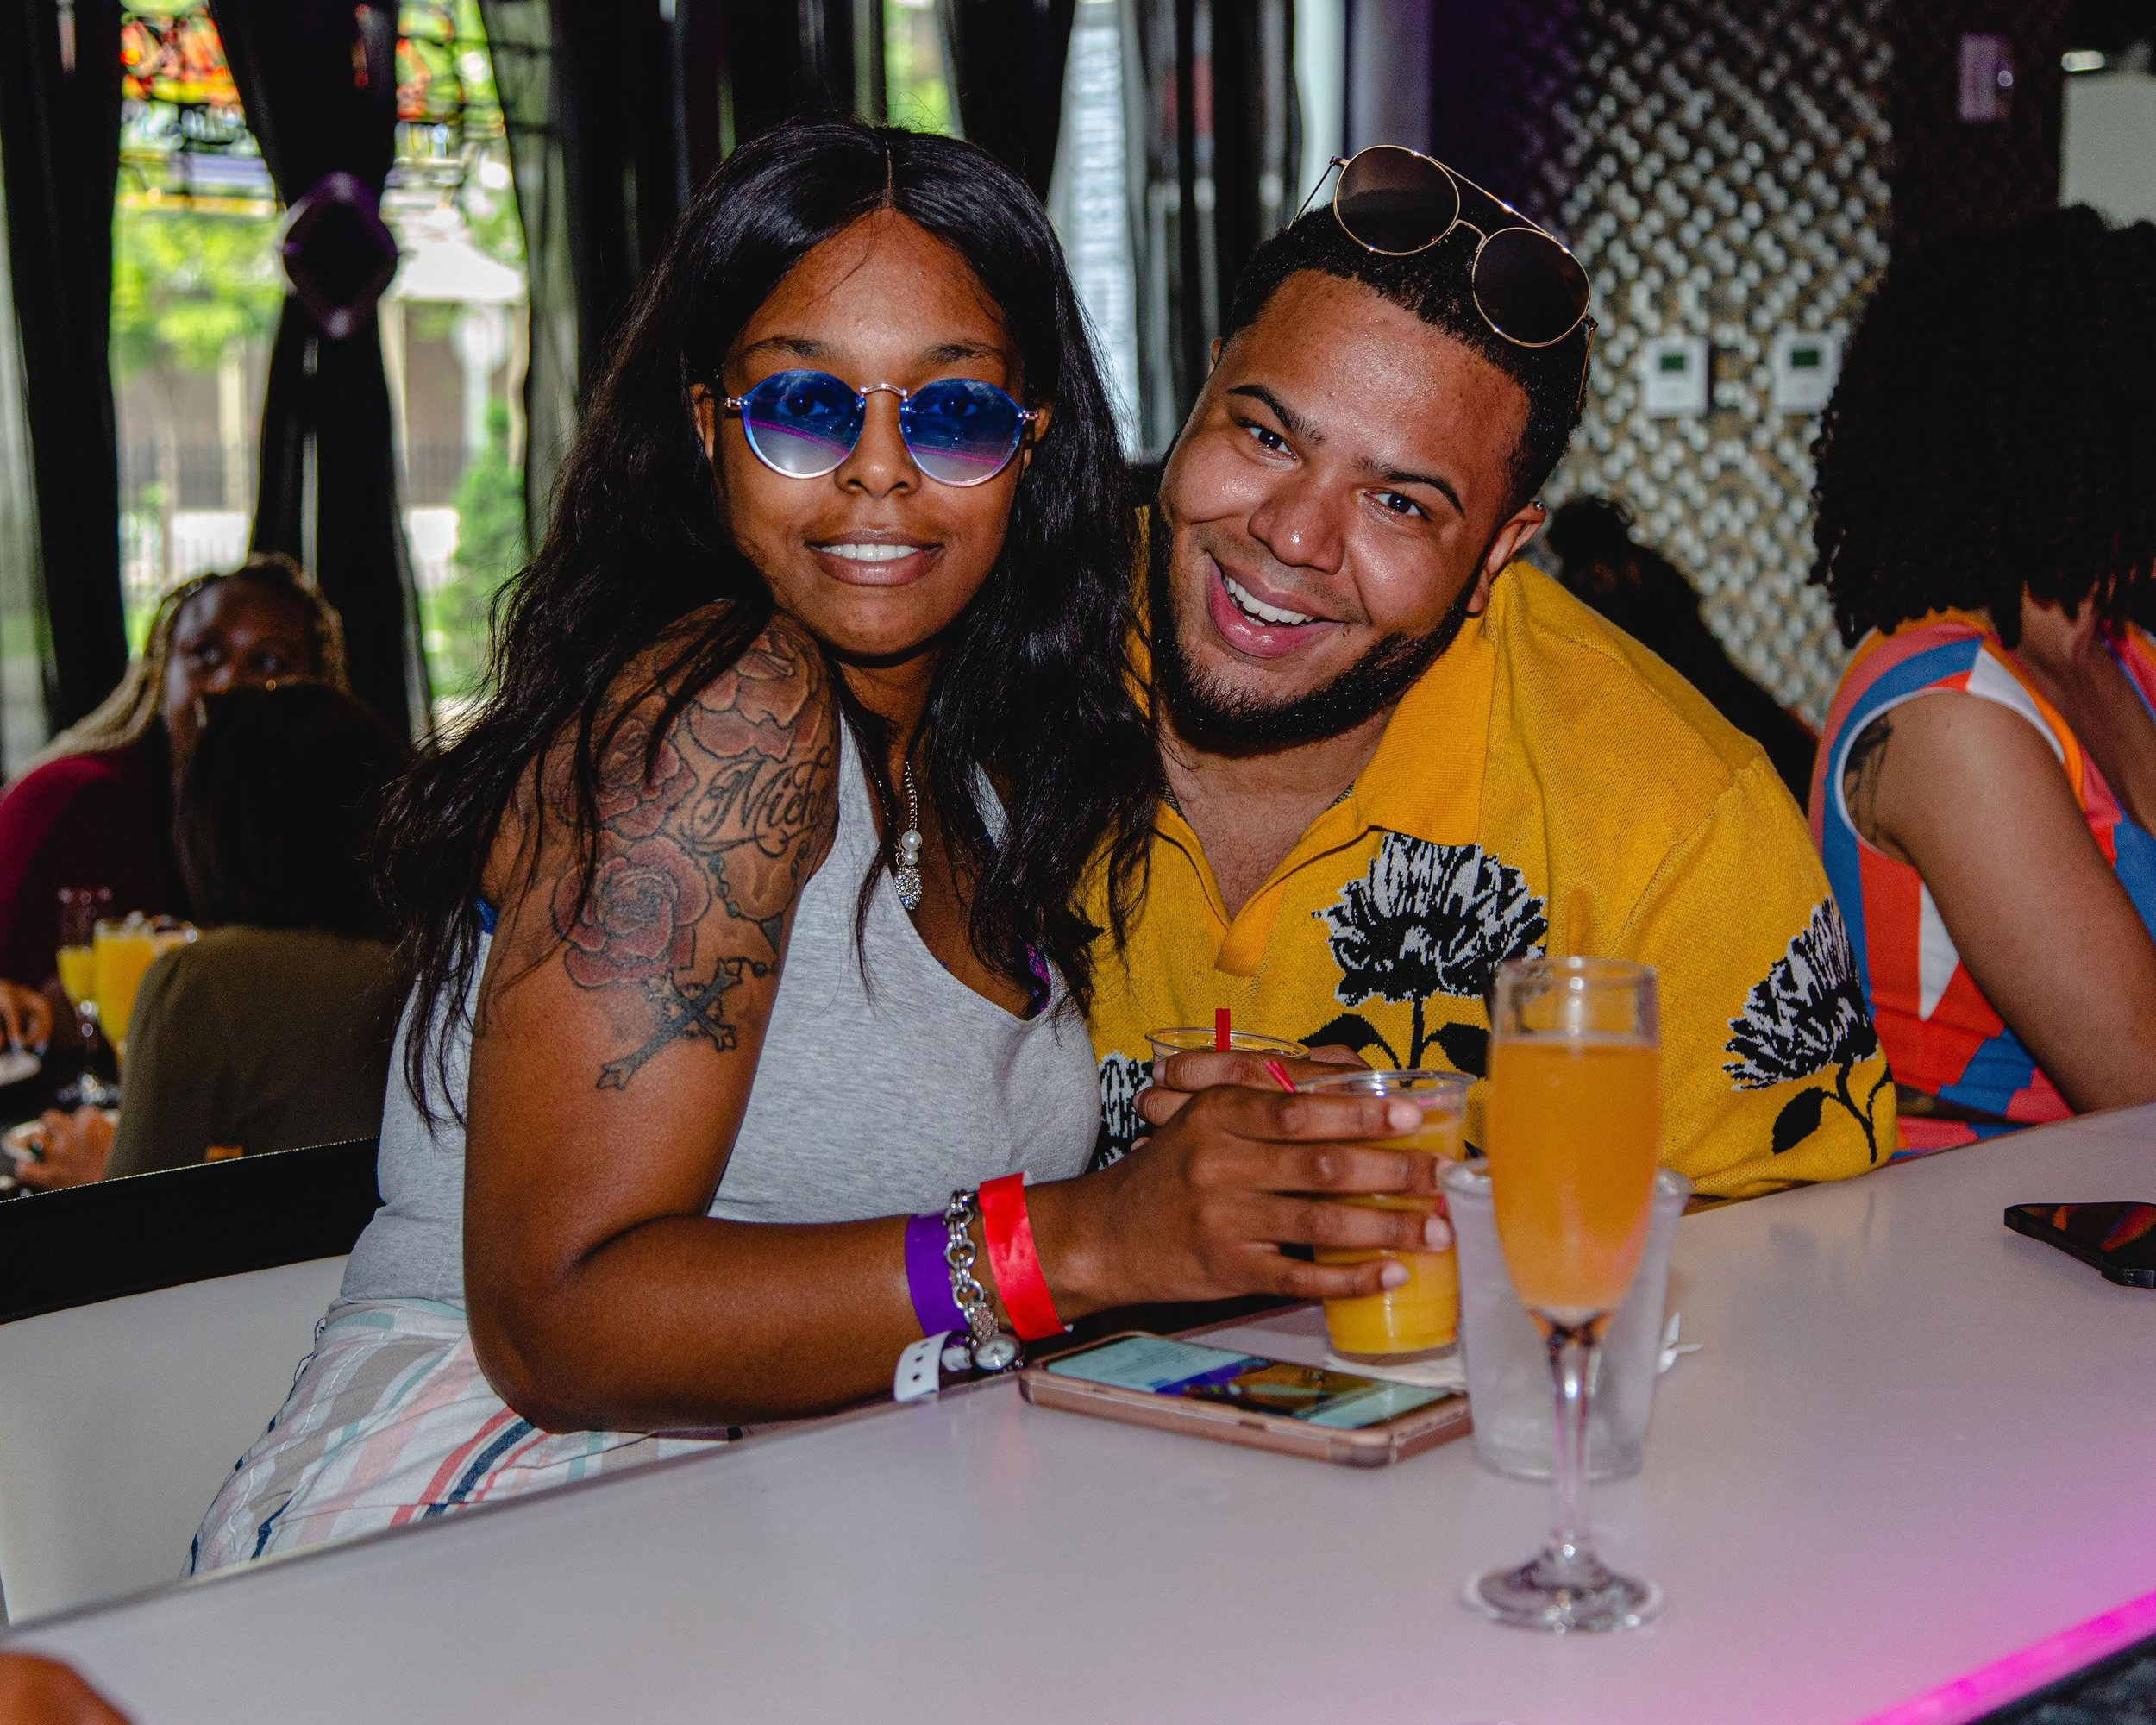 Southern Comfort Brunch May 25,2019 VB3 Restaurant Jersey City, NJ Photo Credit: David S. Coy